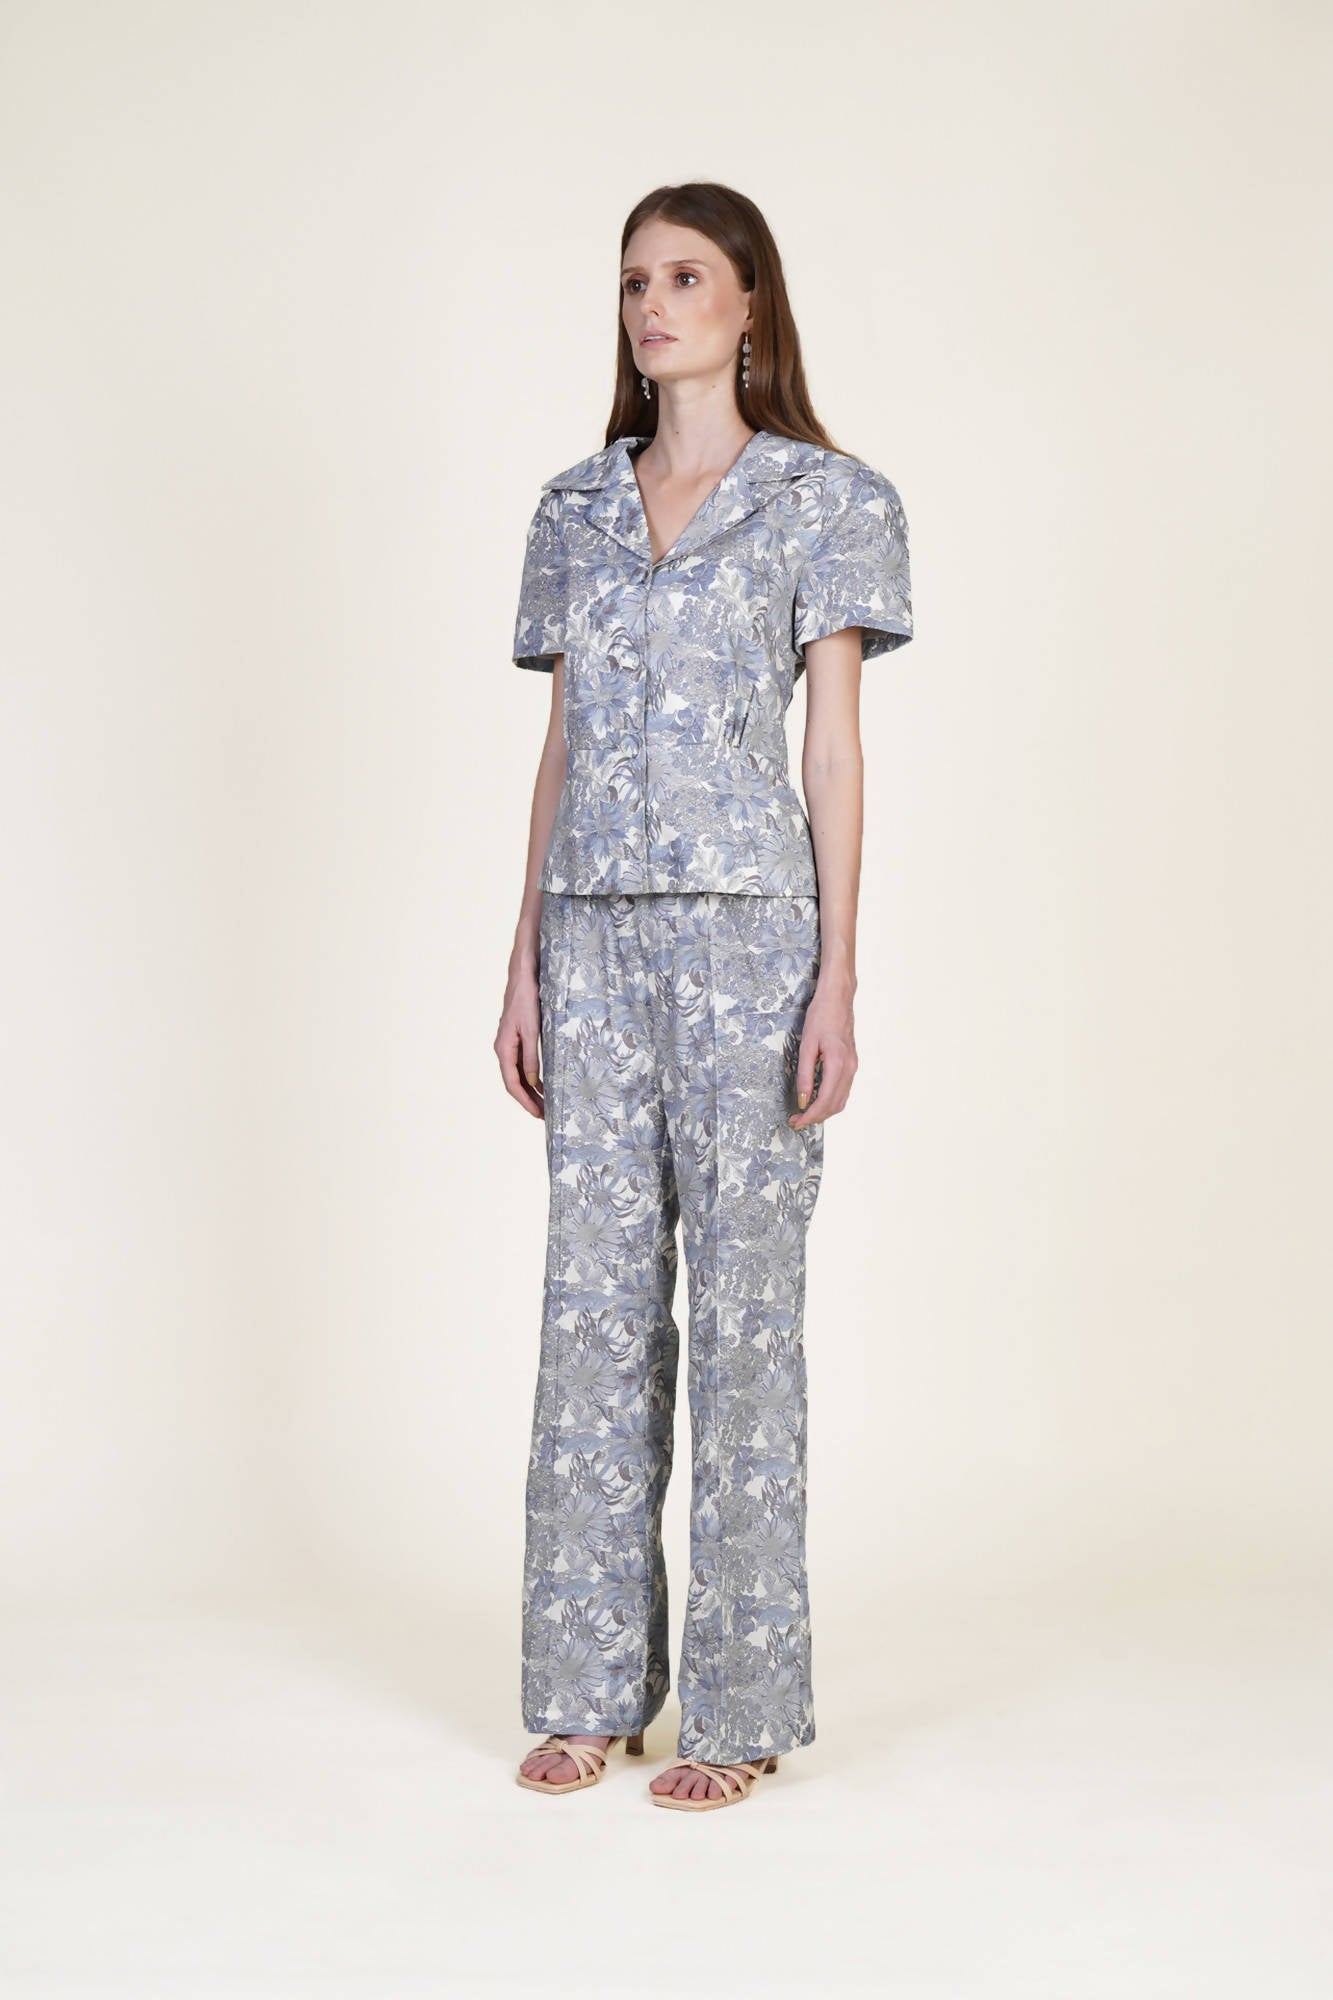 All in Flower Suit Blouse in Pale Blue